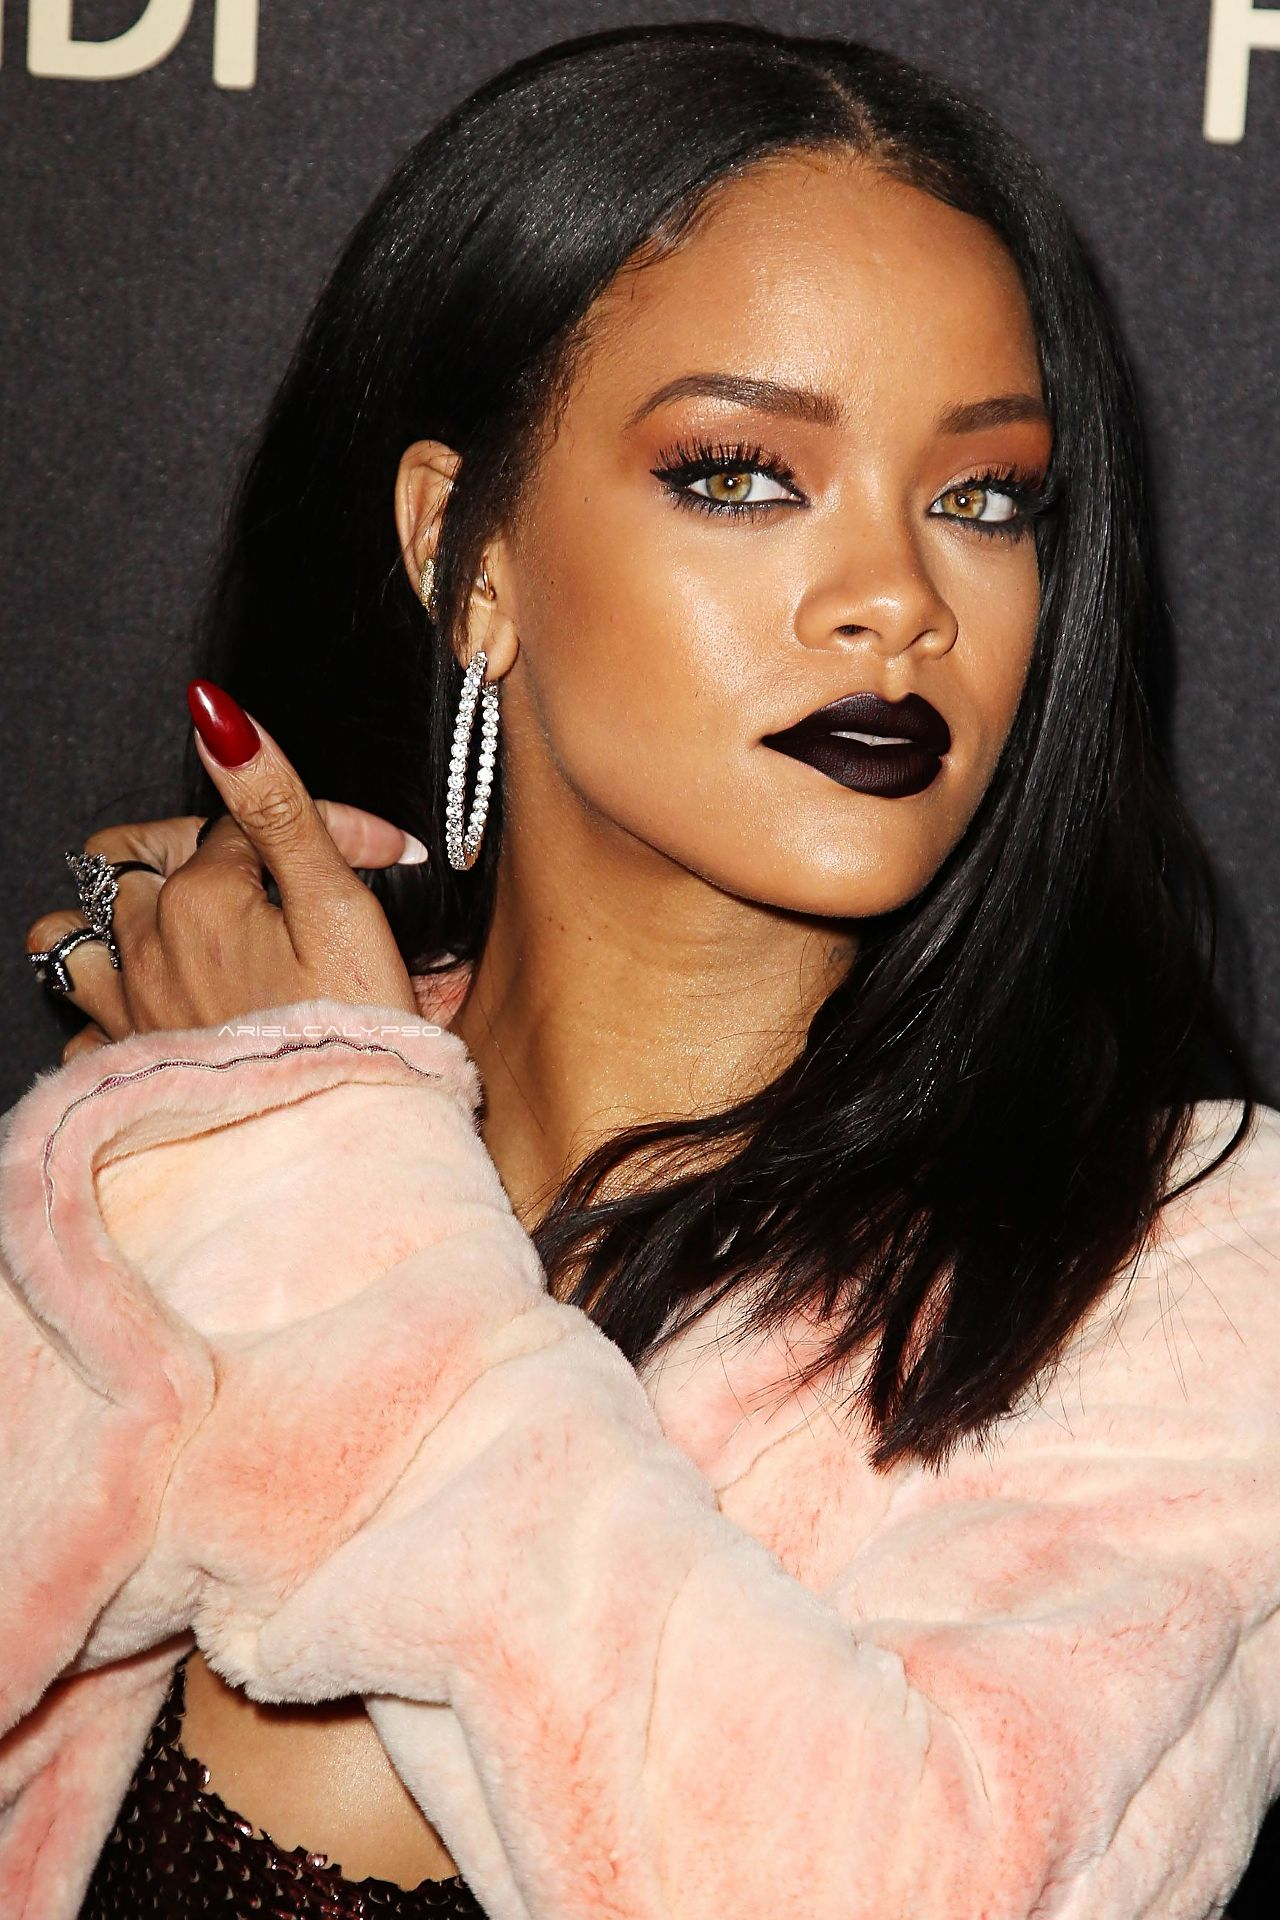 Rihanna iphone wallpaper tumblr - Does The New Interview With Rihanna Reveal More About The Writer Than About Rihanna